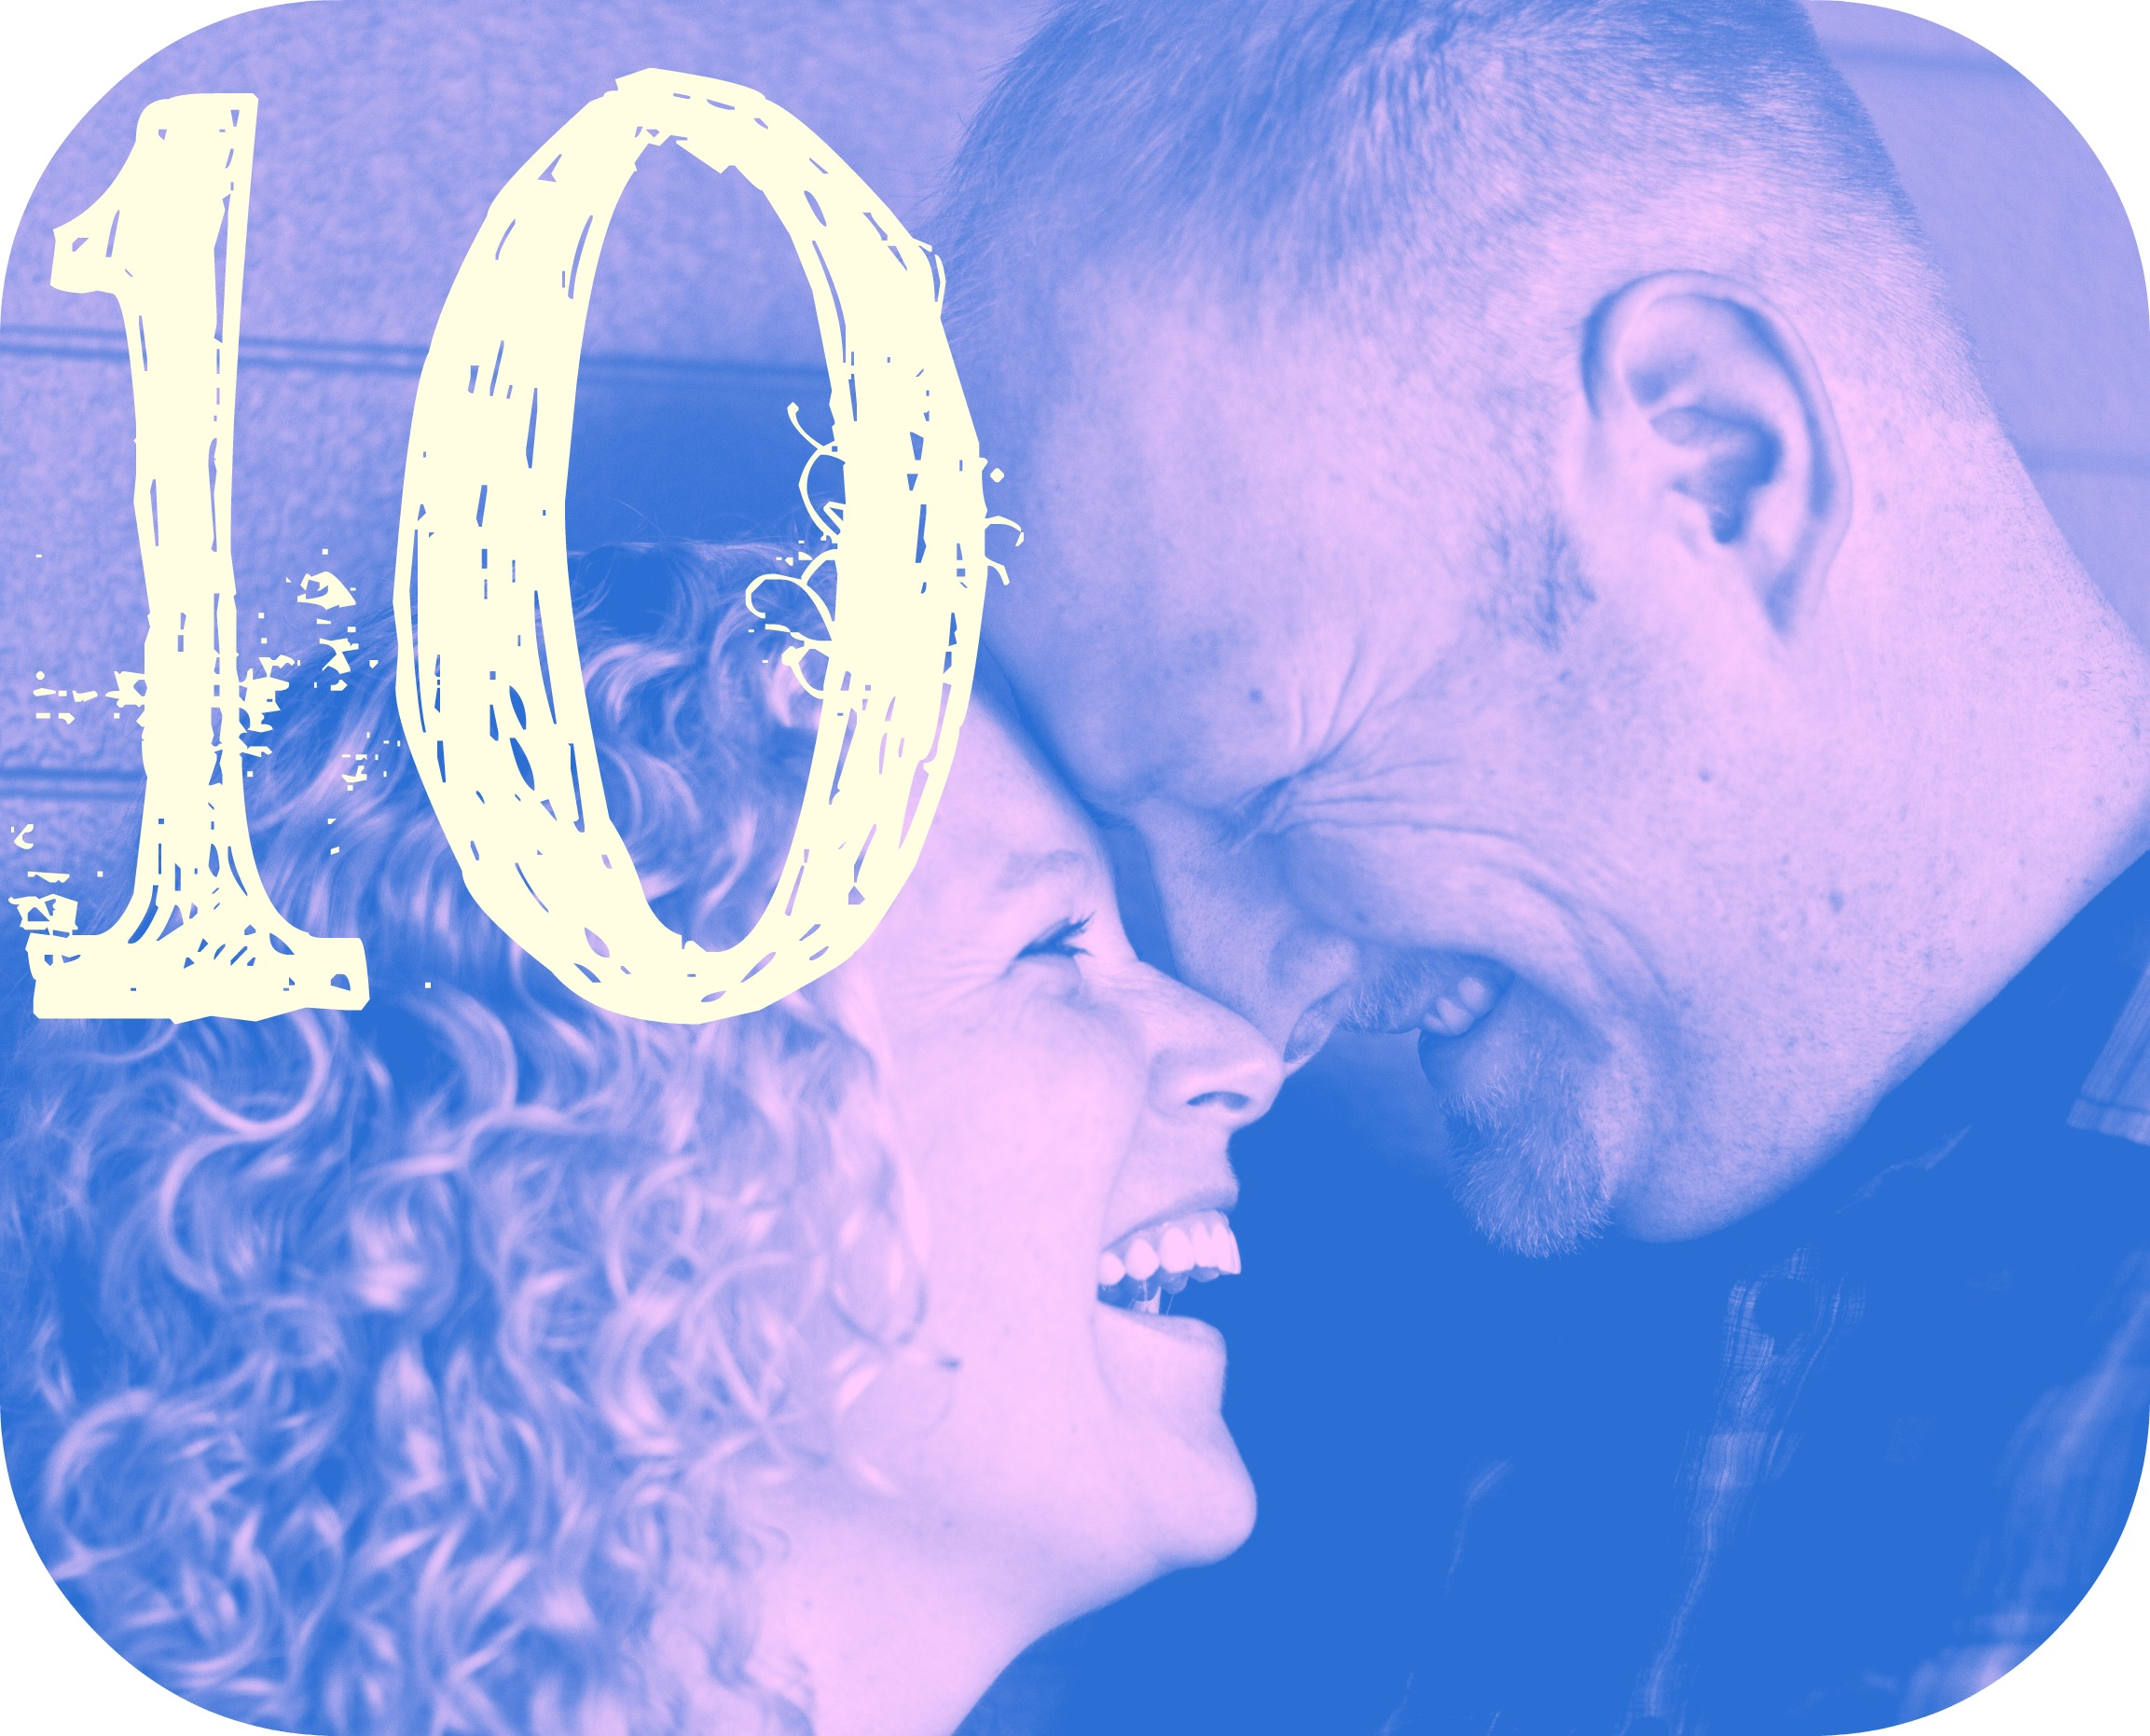 10 day challenge one flesh marriage